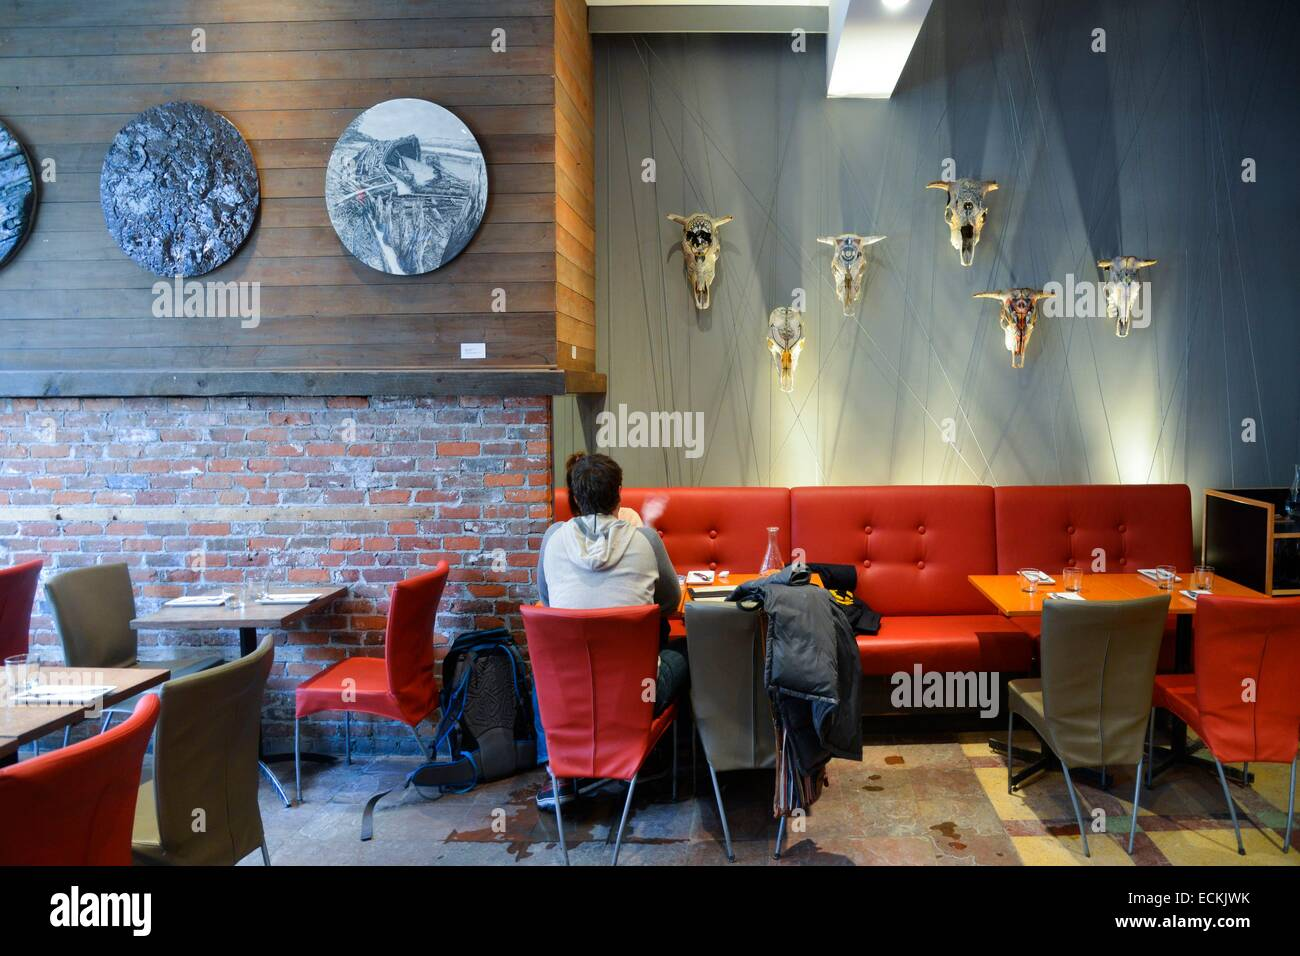 Canada, Quebec province, City of Quebec, restaurant of cultural Complex The Circle, man of back sat at a table - Stock Image